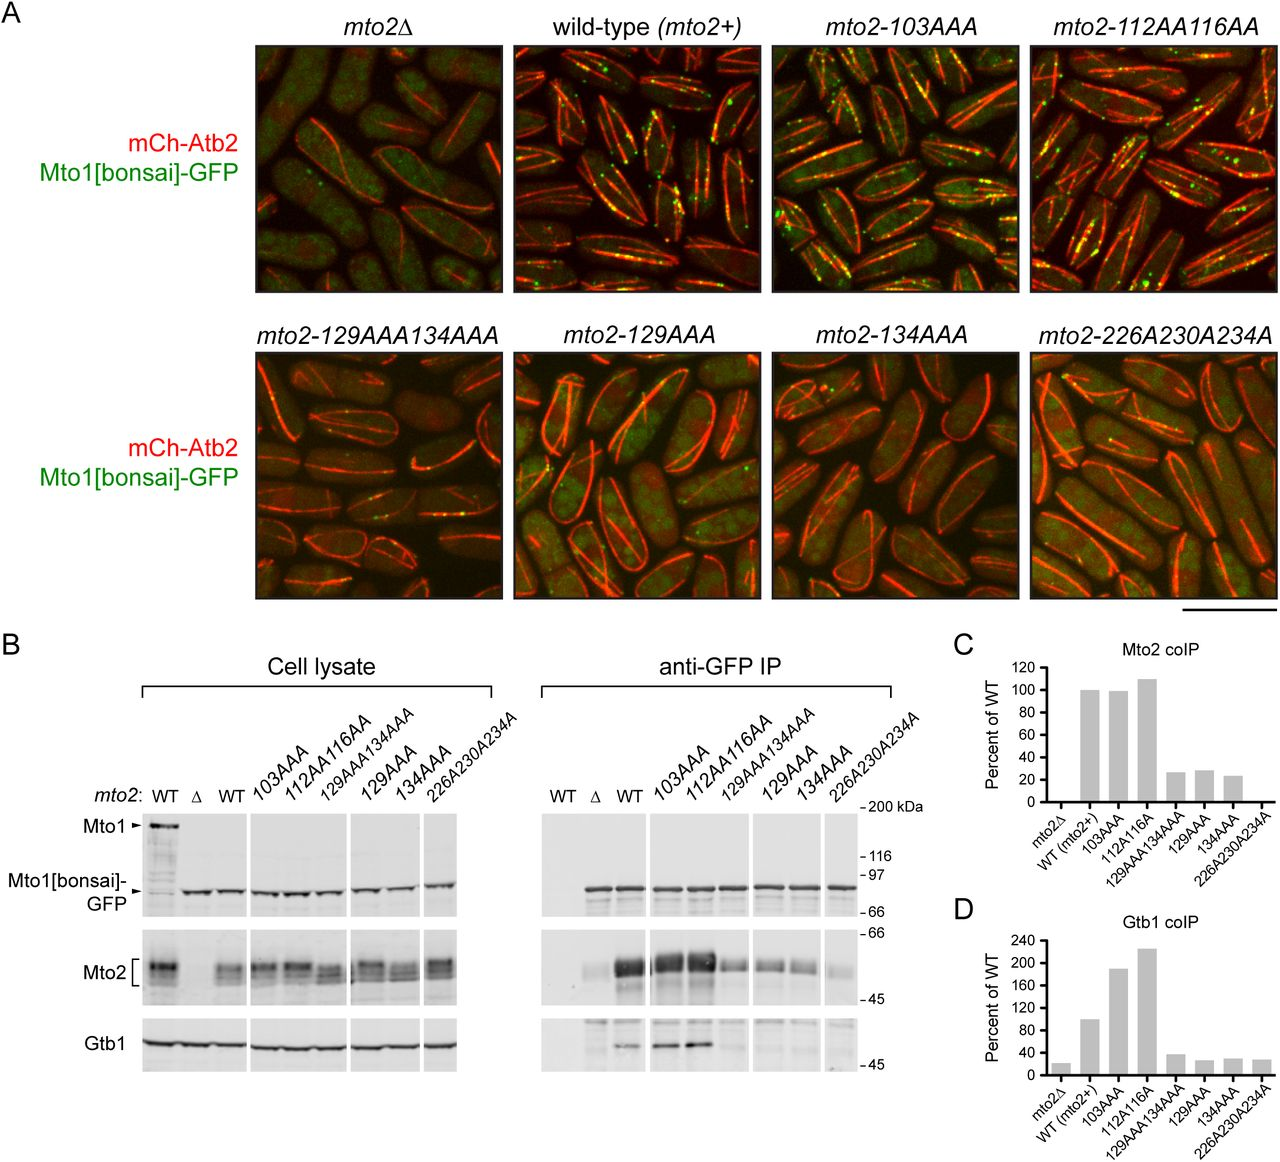 Mutations in the <t>Mto2</t> NND and <t>TCD</t> impair Mto1/2 function in vivo . (A) Microtubule organization and Mto1[bonsai]-GFP puncta formation in wild-type cells ( mto2+) and in the mto2 mutants indicated. Quantification of microtubule organization is shown in Suppl. Figure 6 . Scale bar, 10 µm. (B) Western blots for Mto1, Mto2, and γ -tubulin (Gtb1), showing coimmunoprecipitation with Mto1[bonsai]-GFP in wild-type cells and in the mto2 mutants indicated. Left-most lane is from cells with untagged full-length Mto1. (C, D) Quantification of coimmunoprecipitation of Mto2 (C) and Gtb1 (D) with Mto1[bonsai]-GFP, from blots in B.